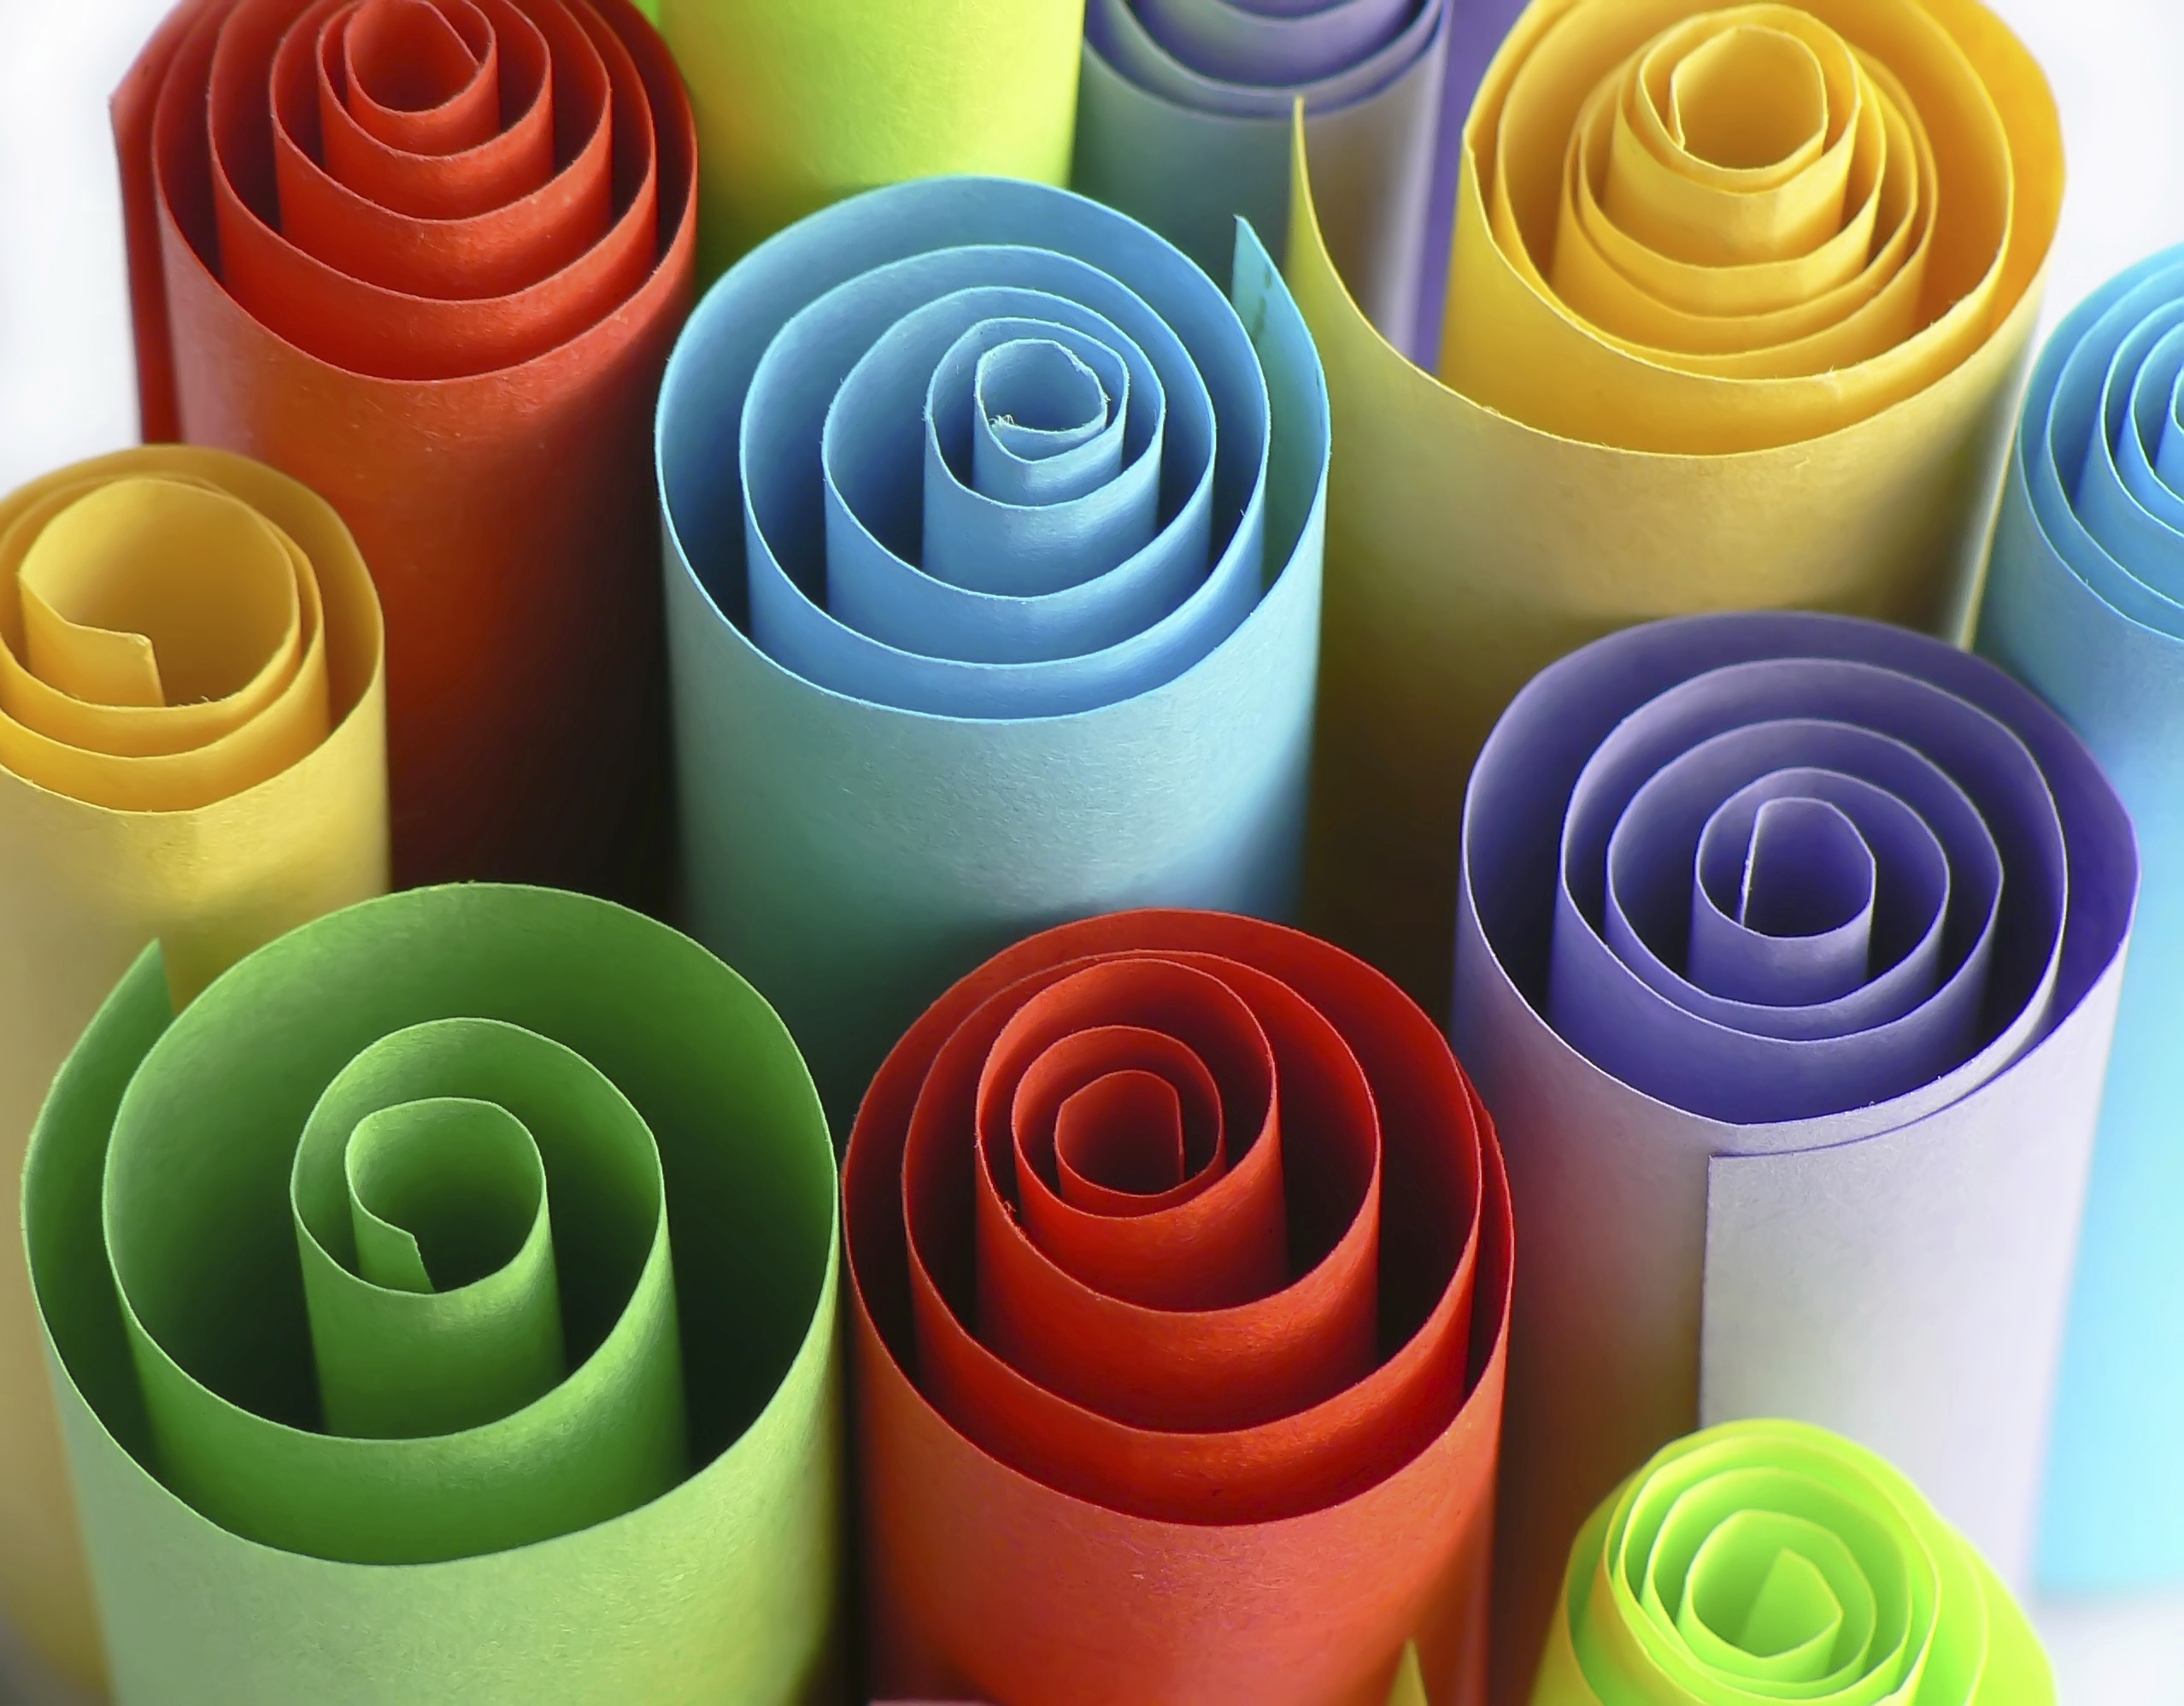 Colorful Rolls of Paper